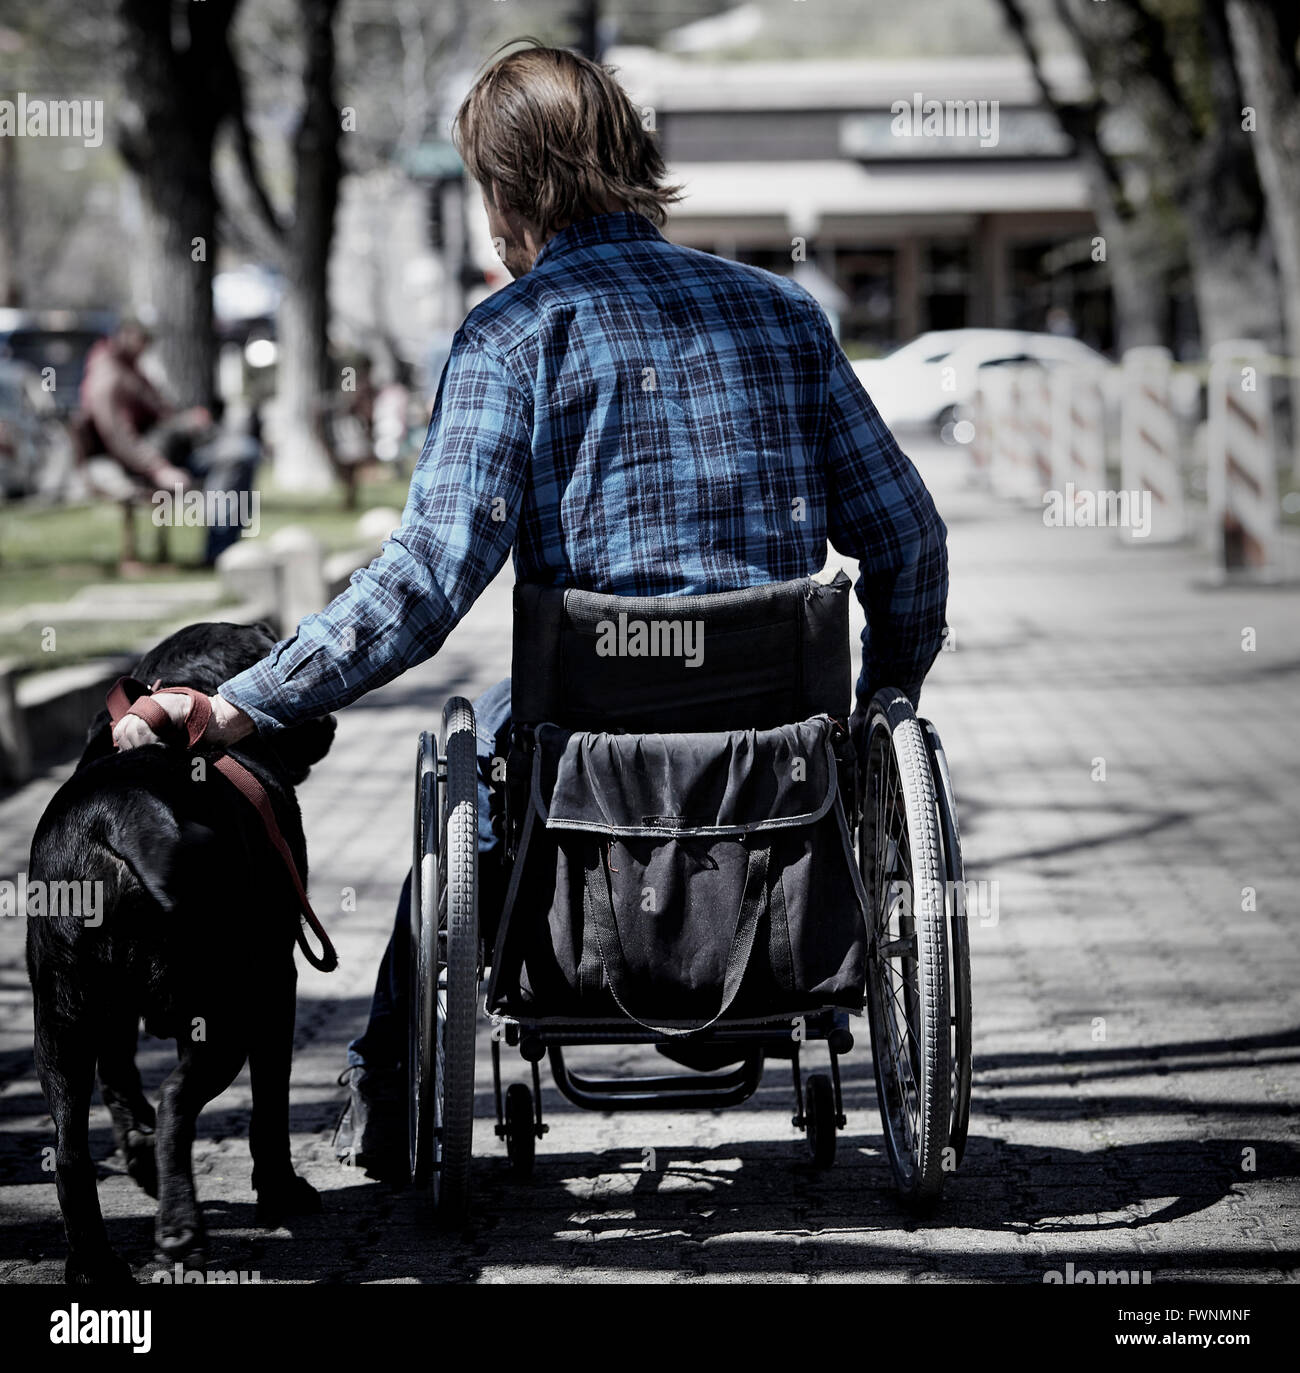 Prescott, Arizona, USA - March 26, 2016: An unidentified man with wheelchair and guide dog on sidewalk - Stock Image